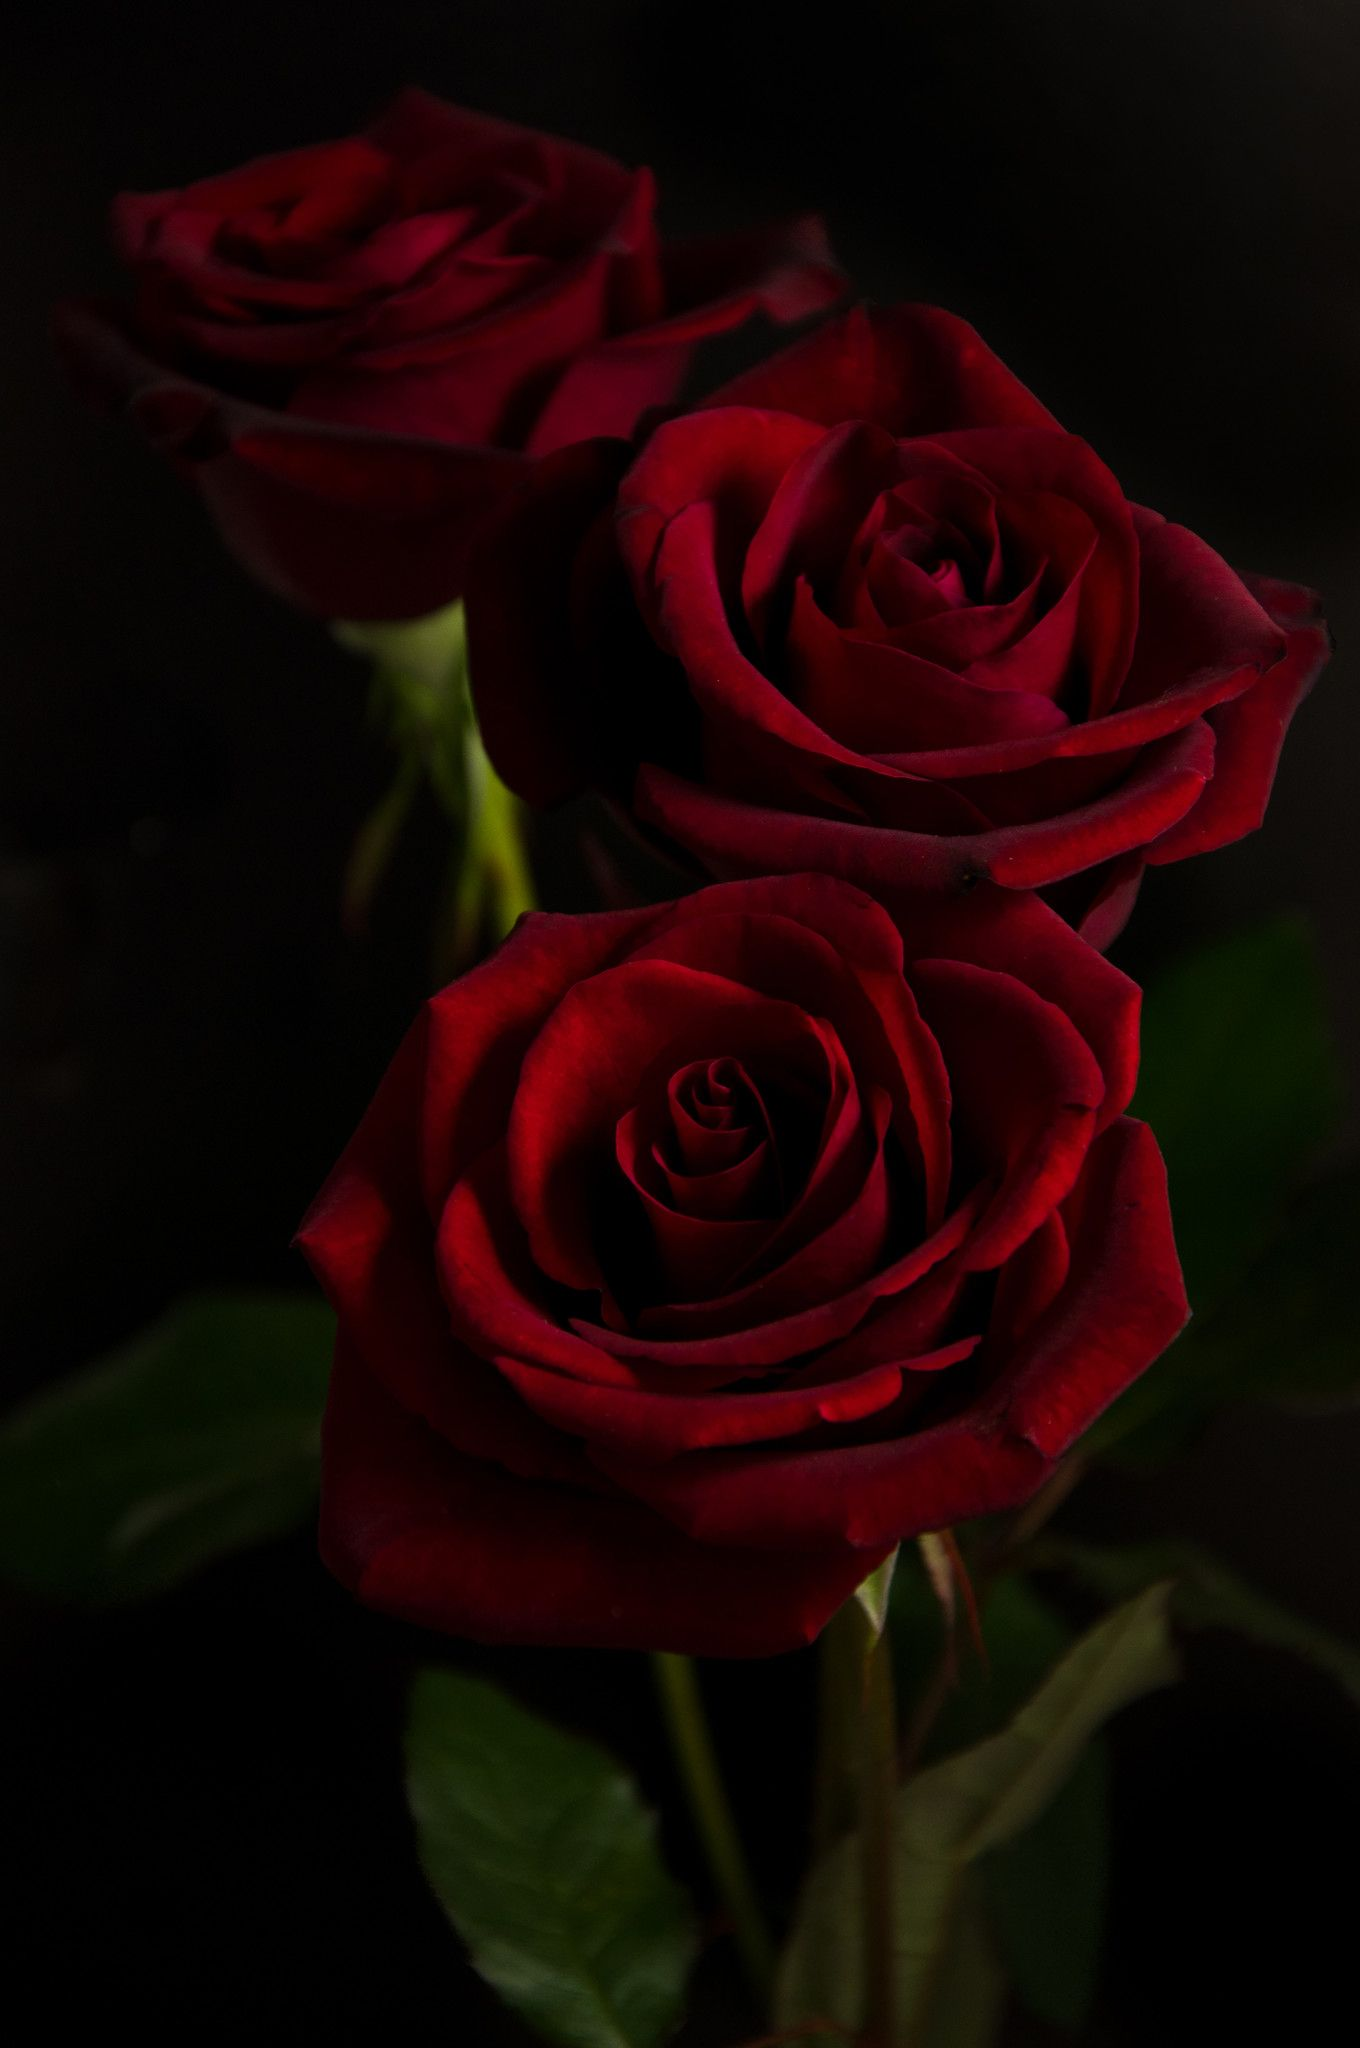 Three Red Roses On A Black Background Red Roses Background Red Roses Wallpaper Love Rose Flower